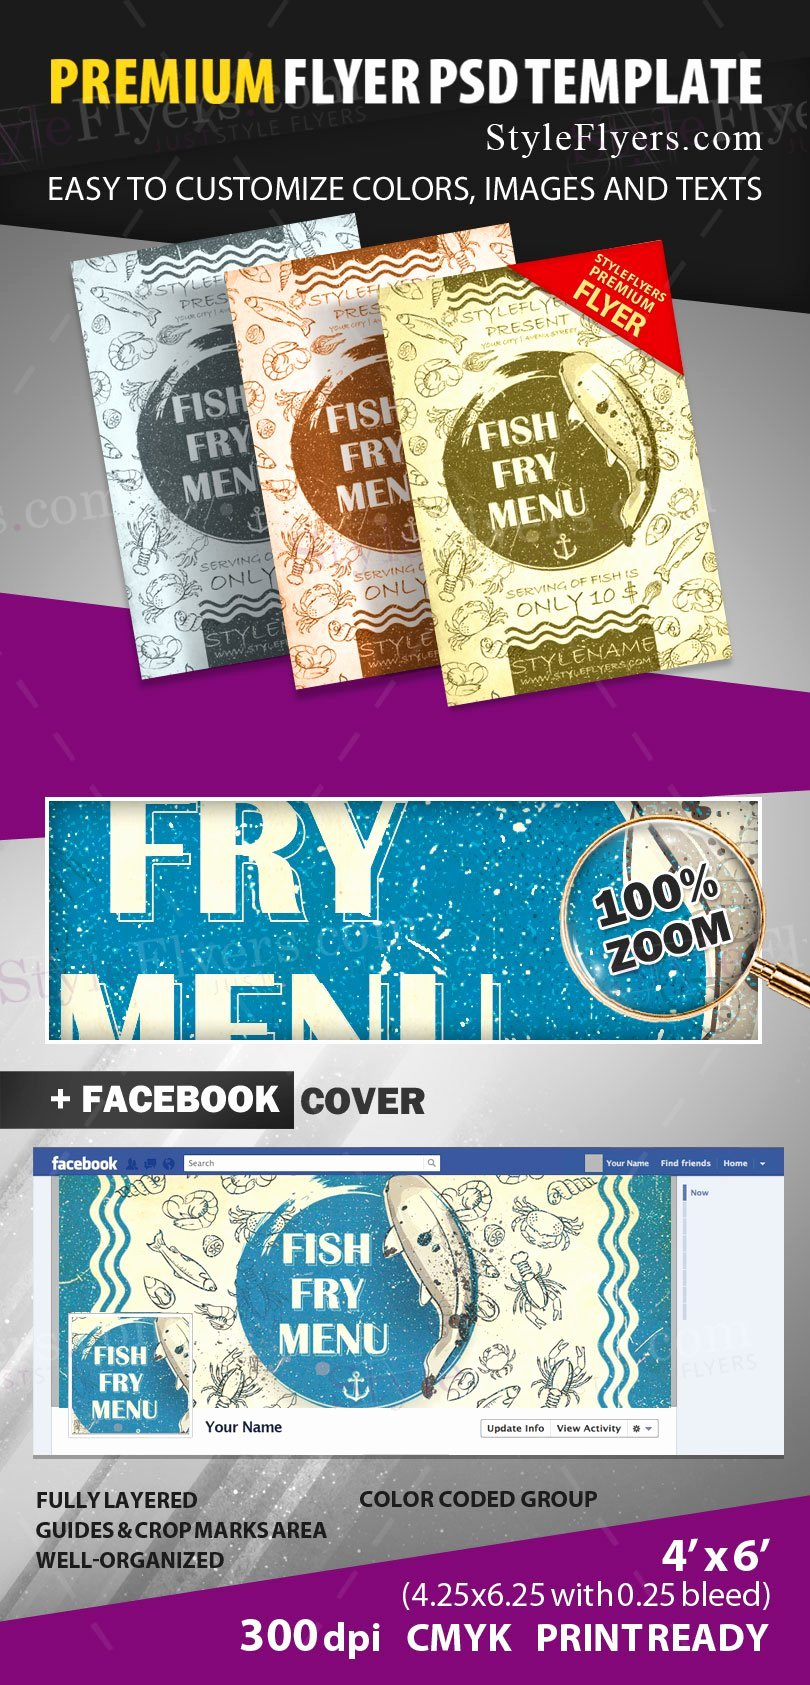 Fish Fry Flyer Template Luxury Fish Fry Menu Psd Flyer Template Styleflyers